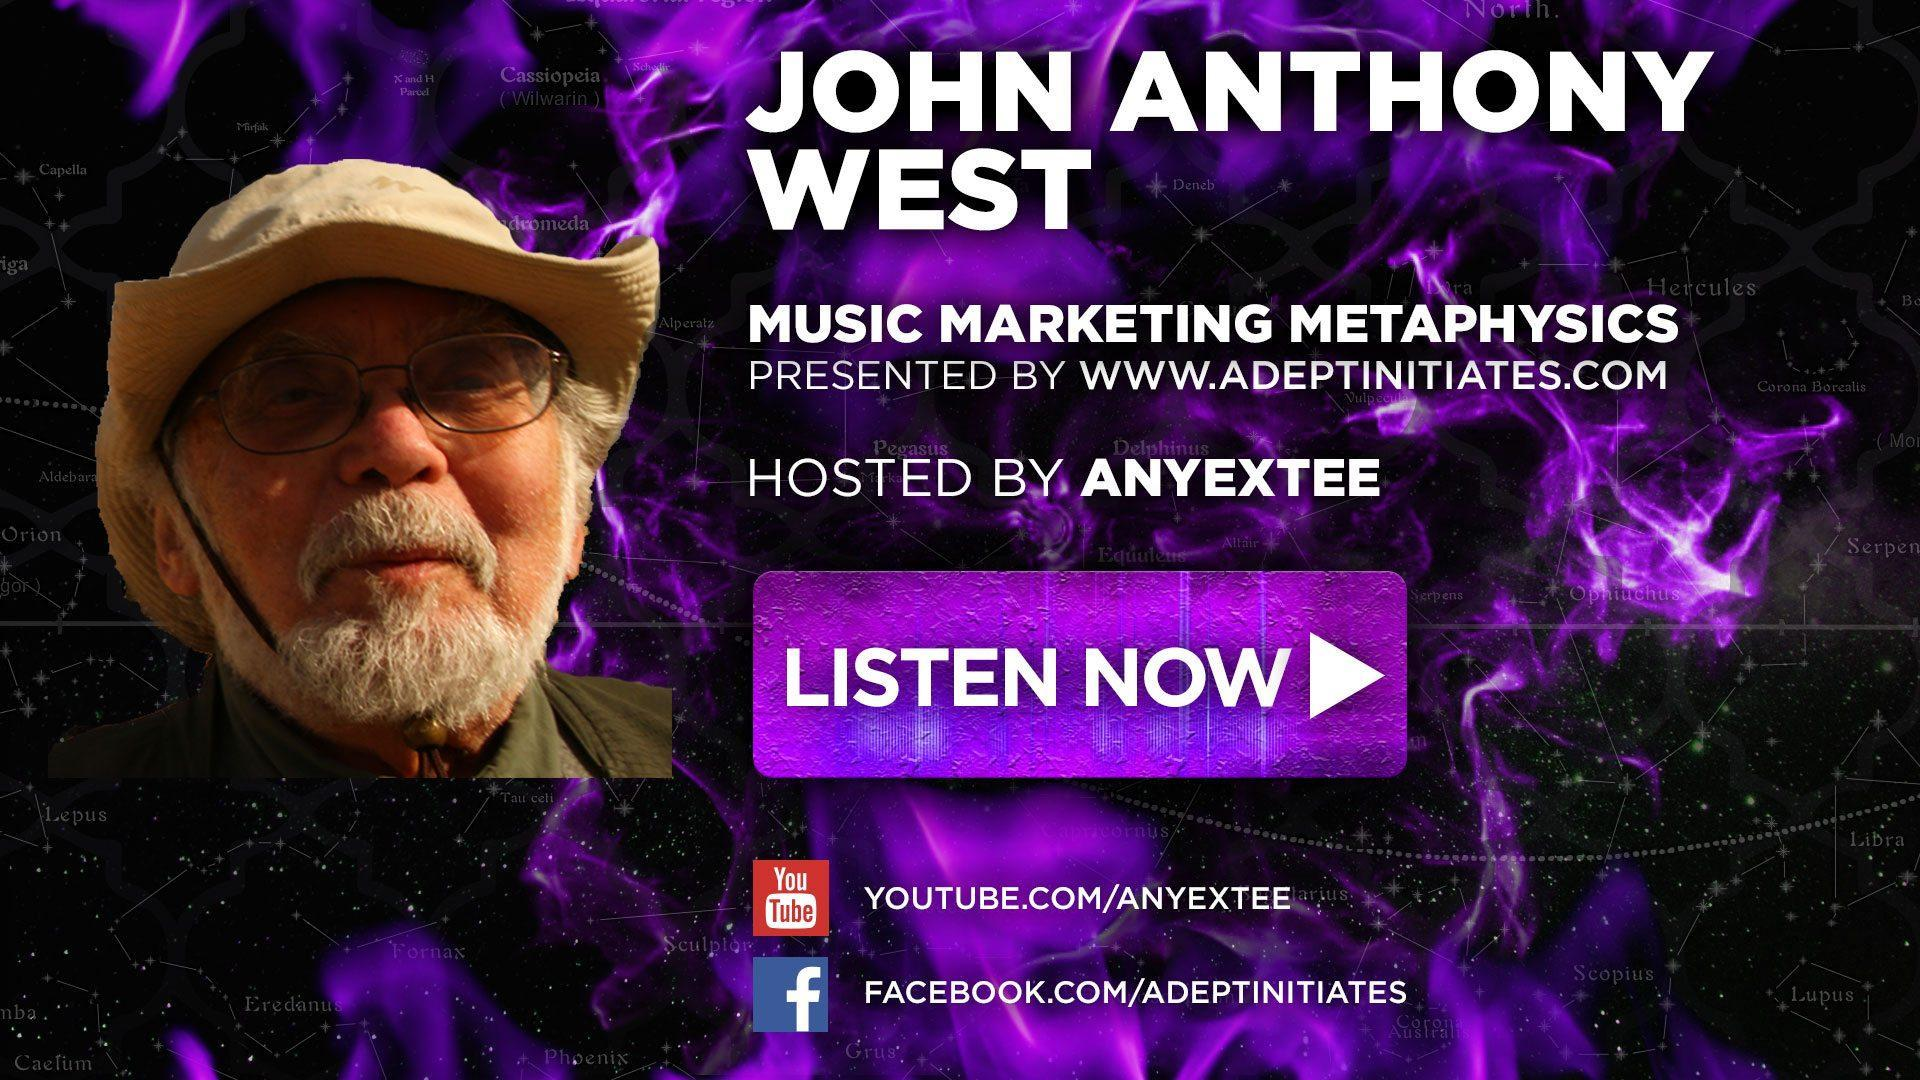 John Anthony West Dead Saints Chronicles